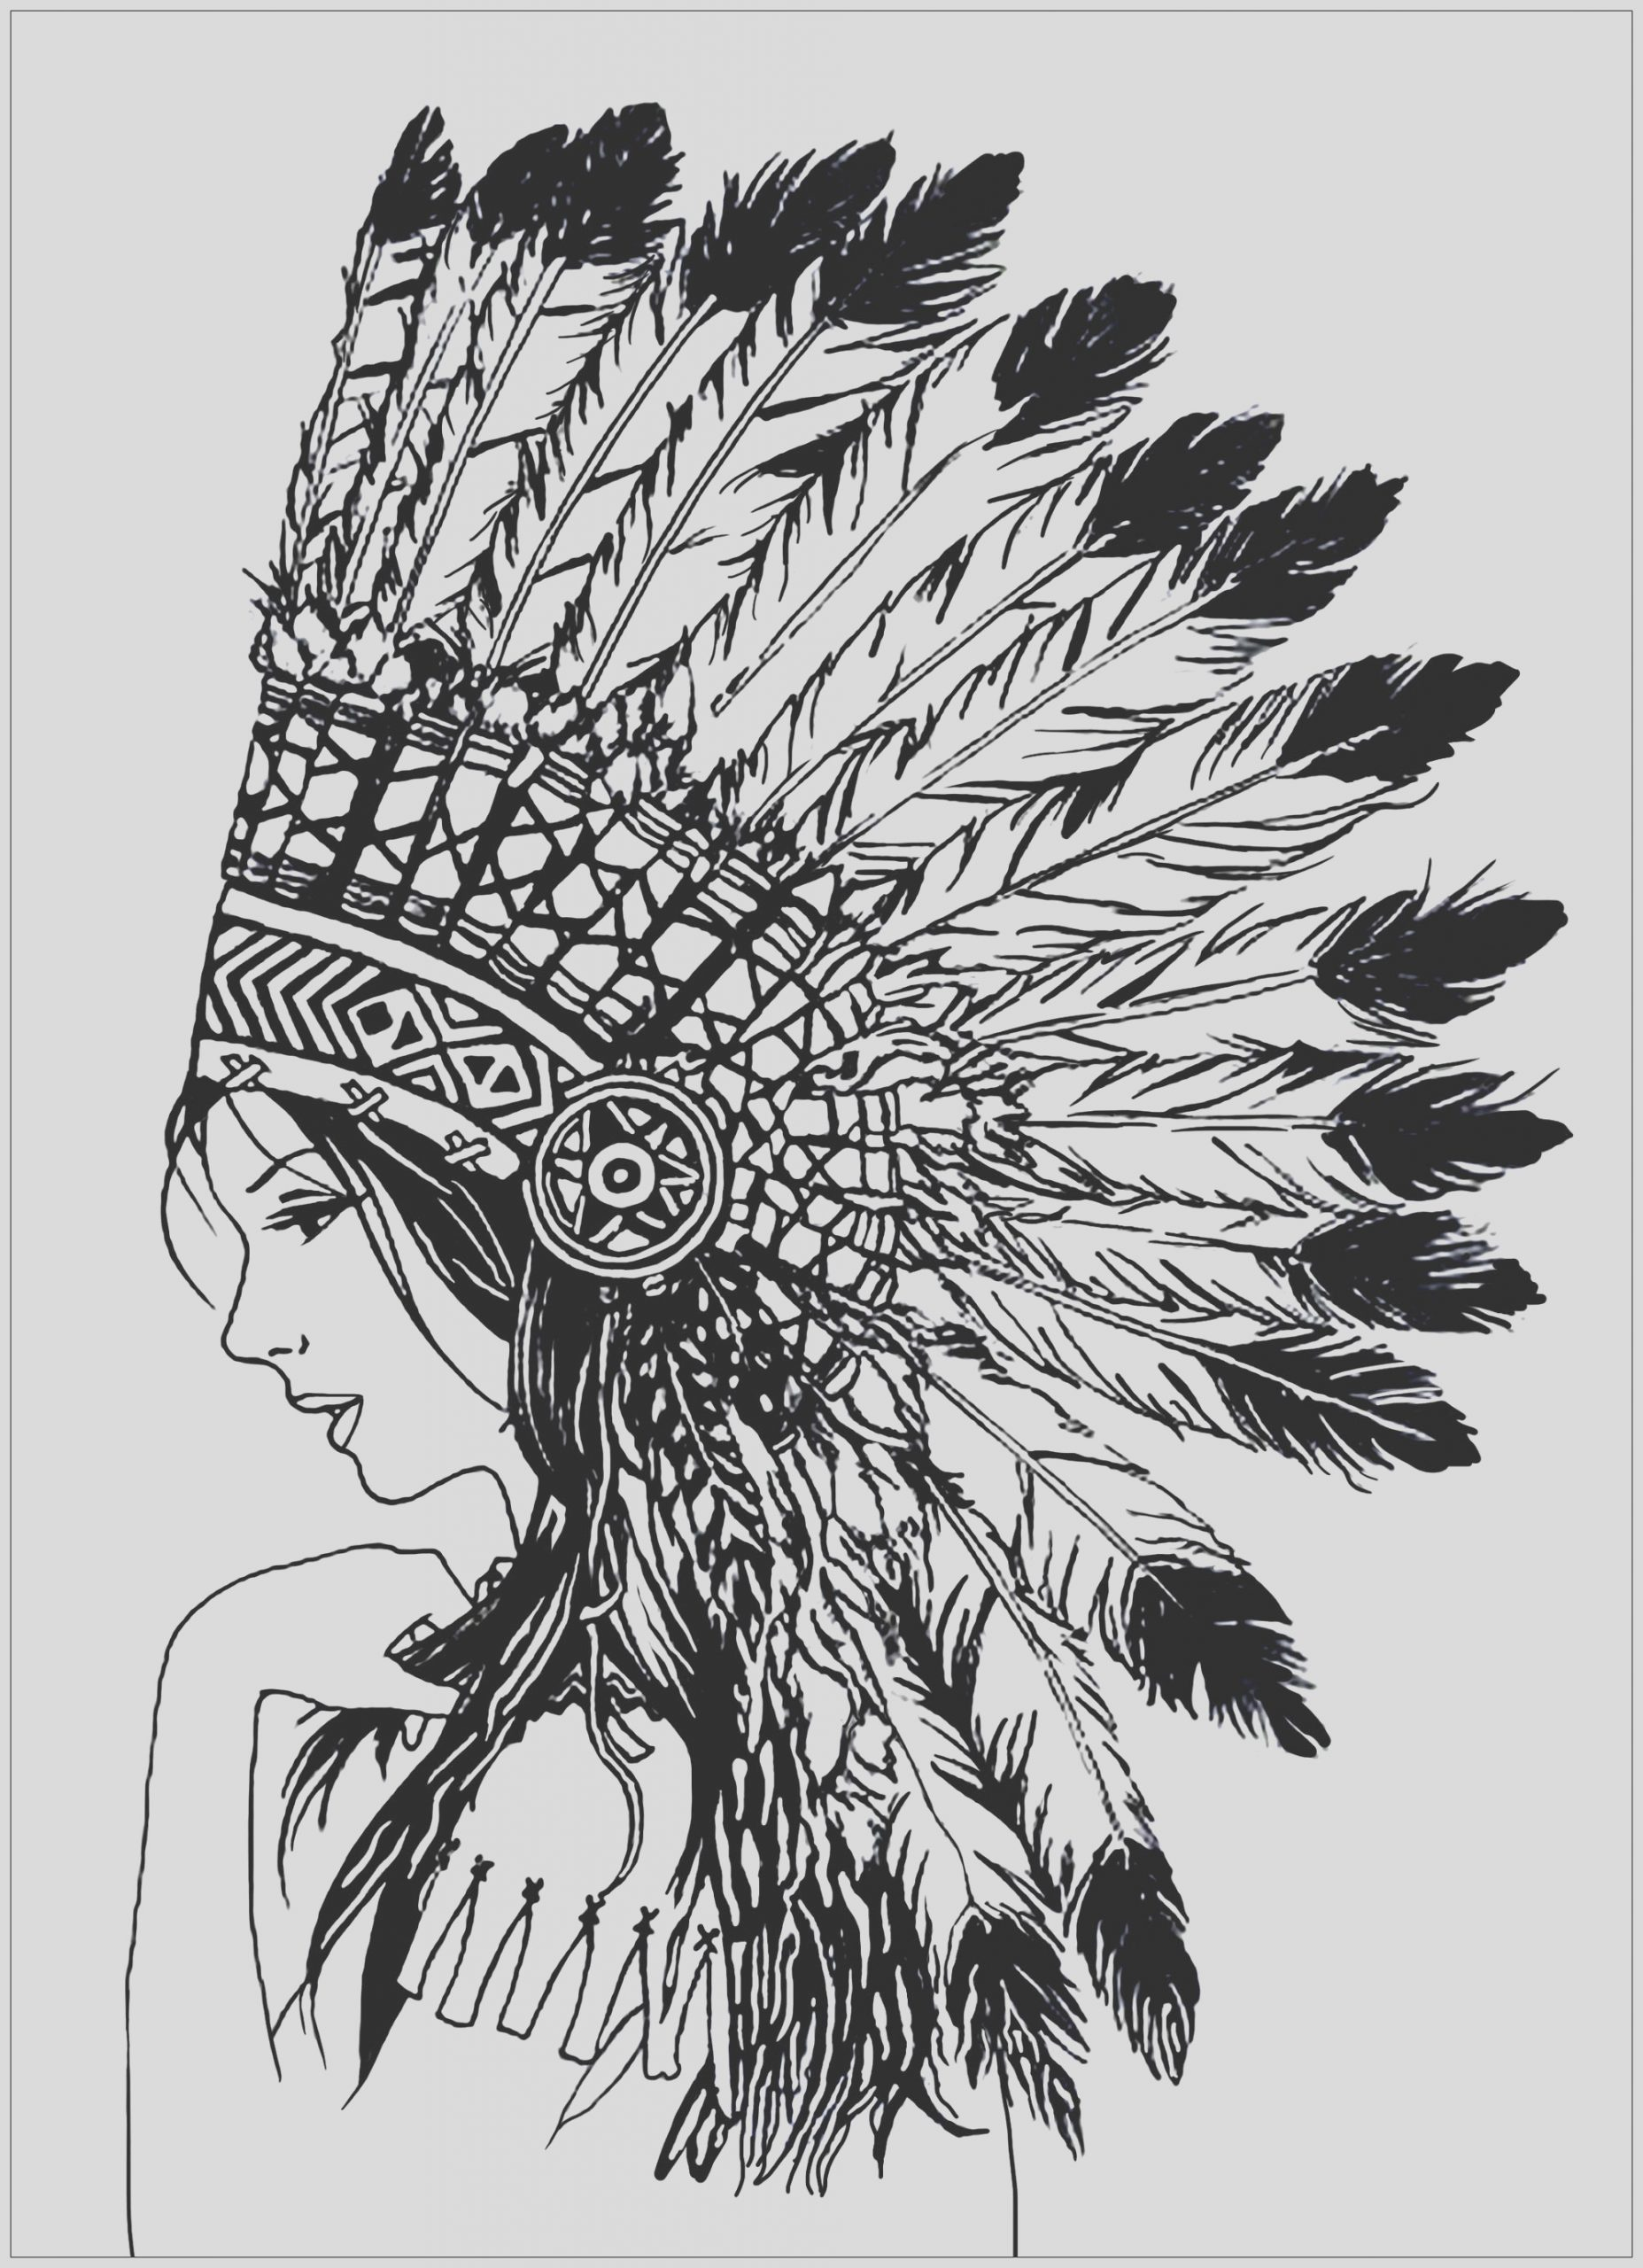 image=native americans coloring beautiful indian woman 1